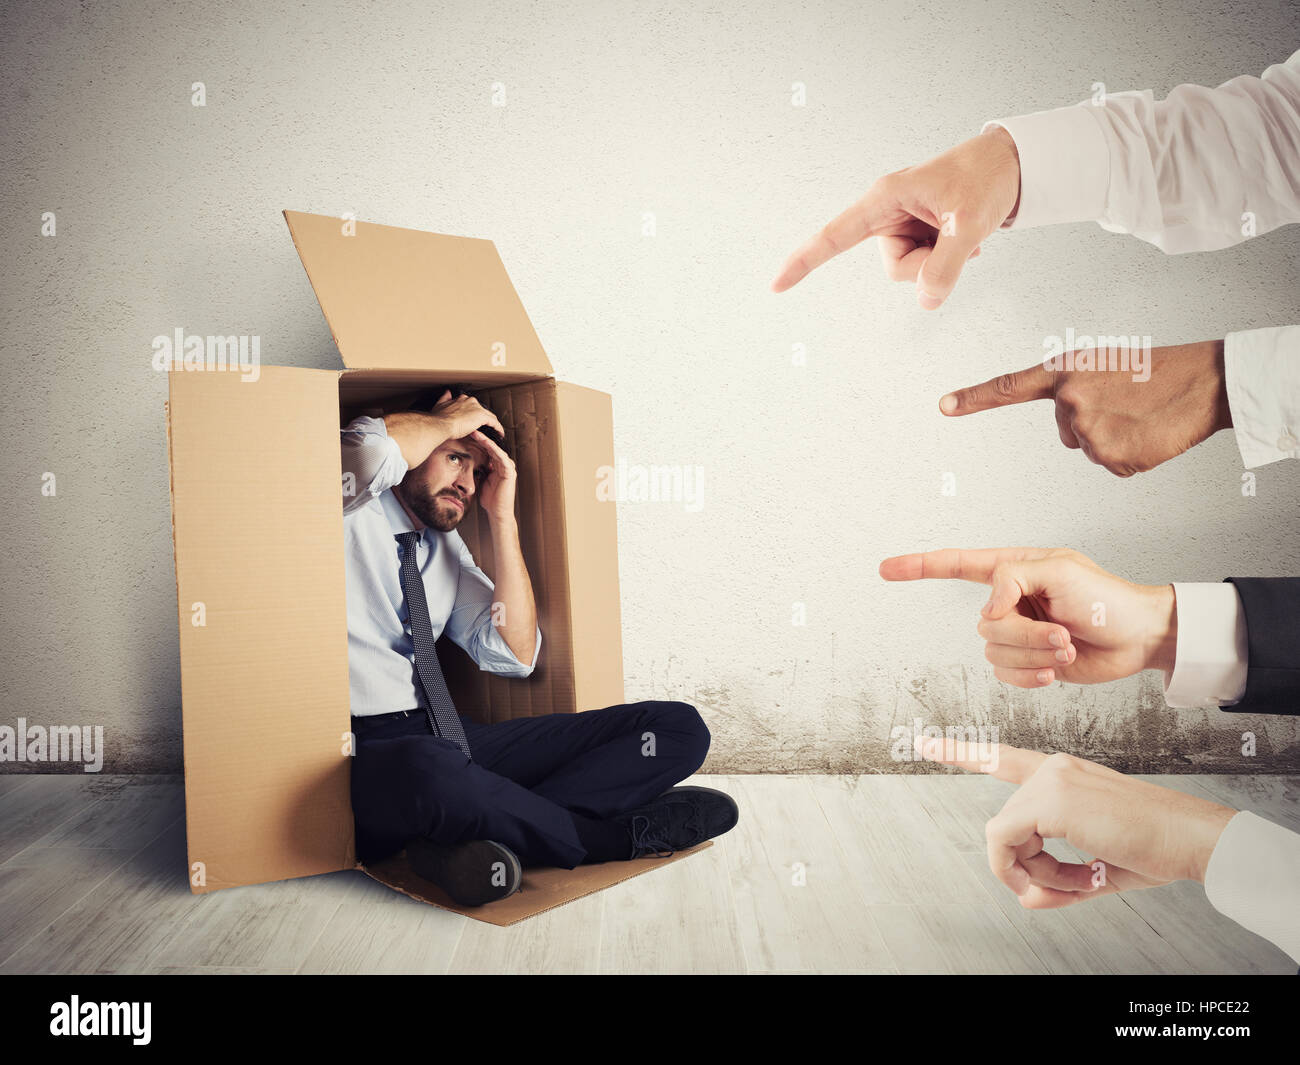 Guilty businessman indicated by colleagues - Stock Image